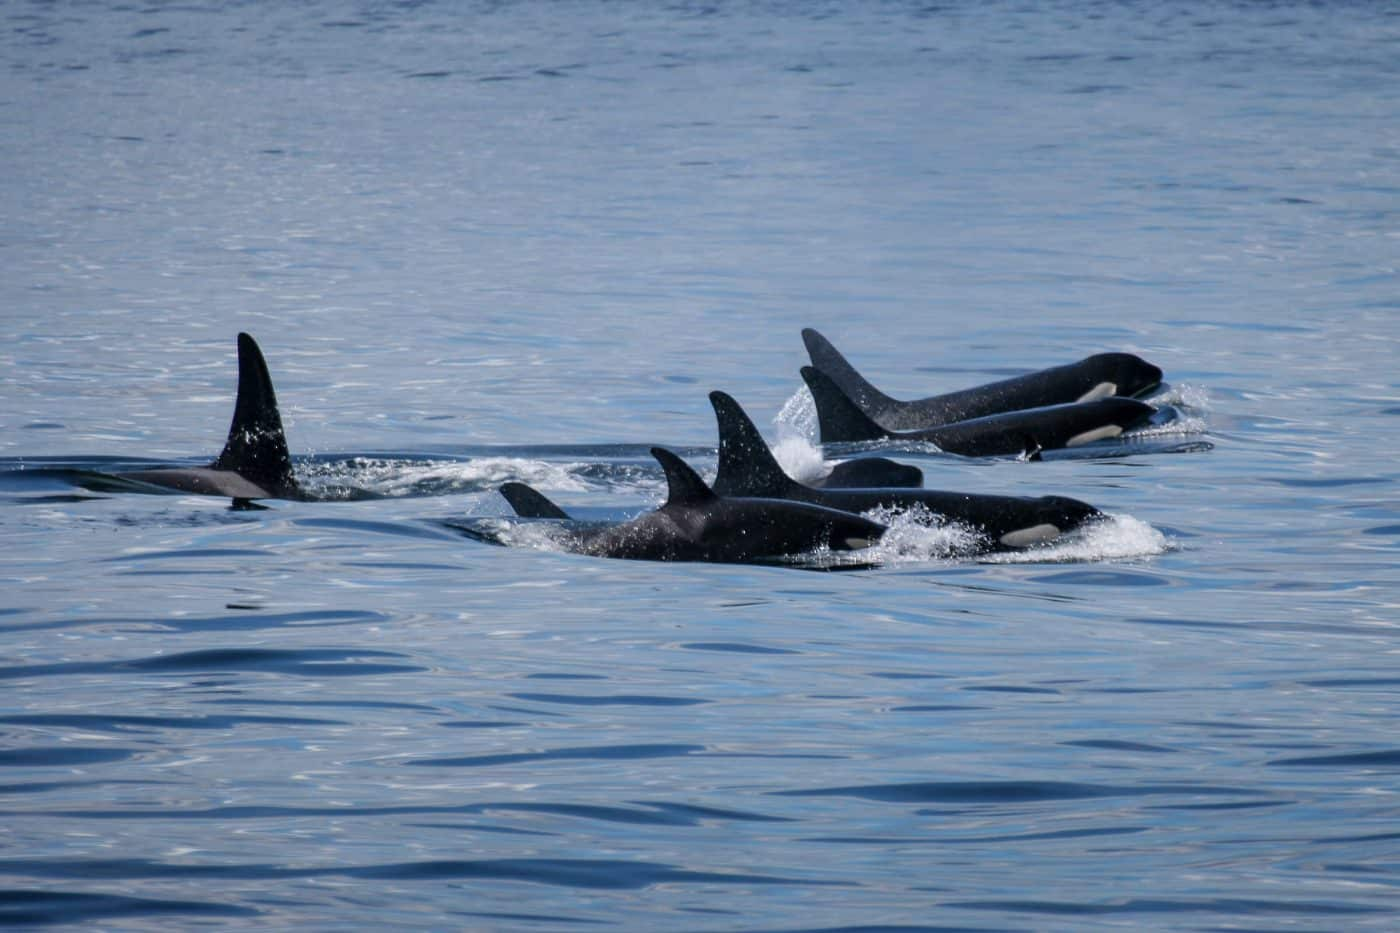 A pod of killer whales in Greenland. Photo by Aqqa Rosing Asvid.